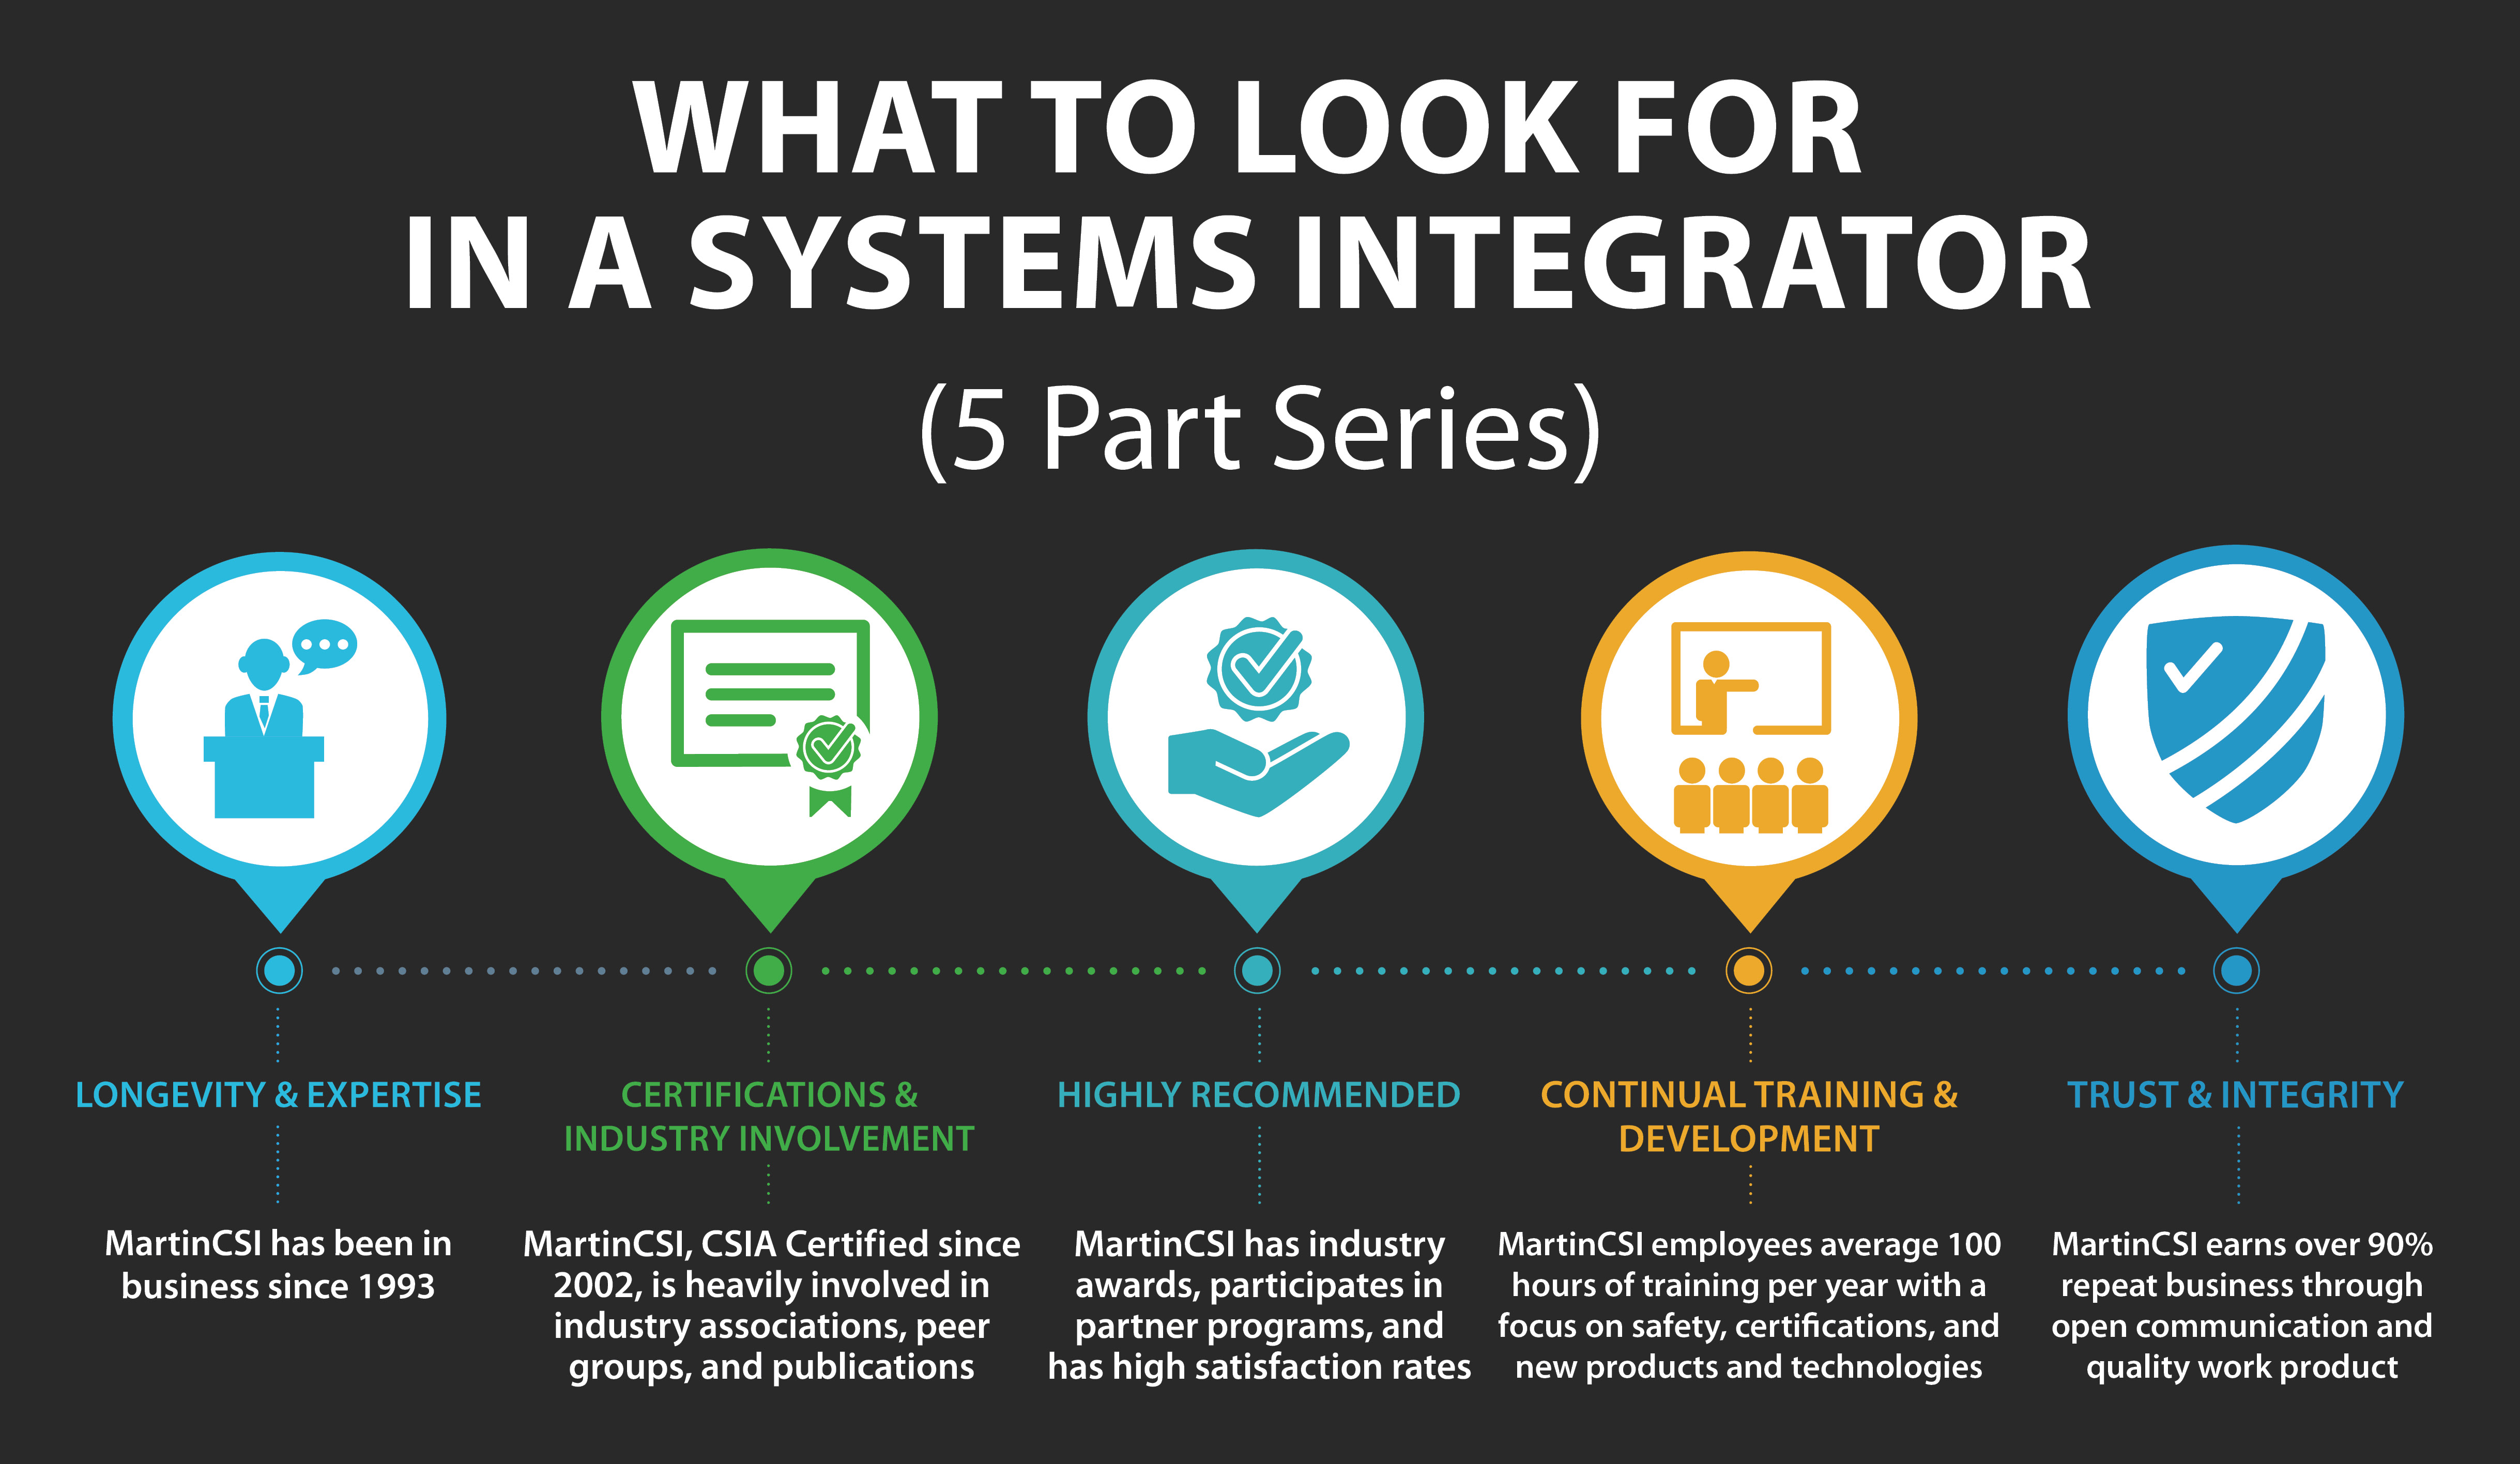 What To Look For In A Systems Integrator